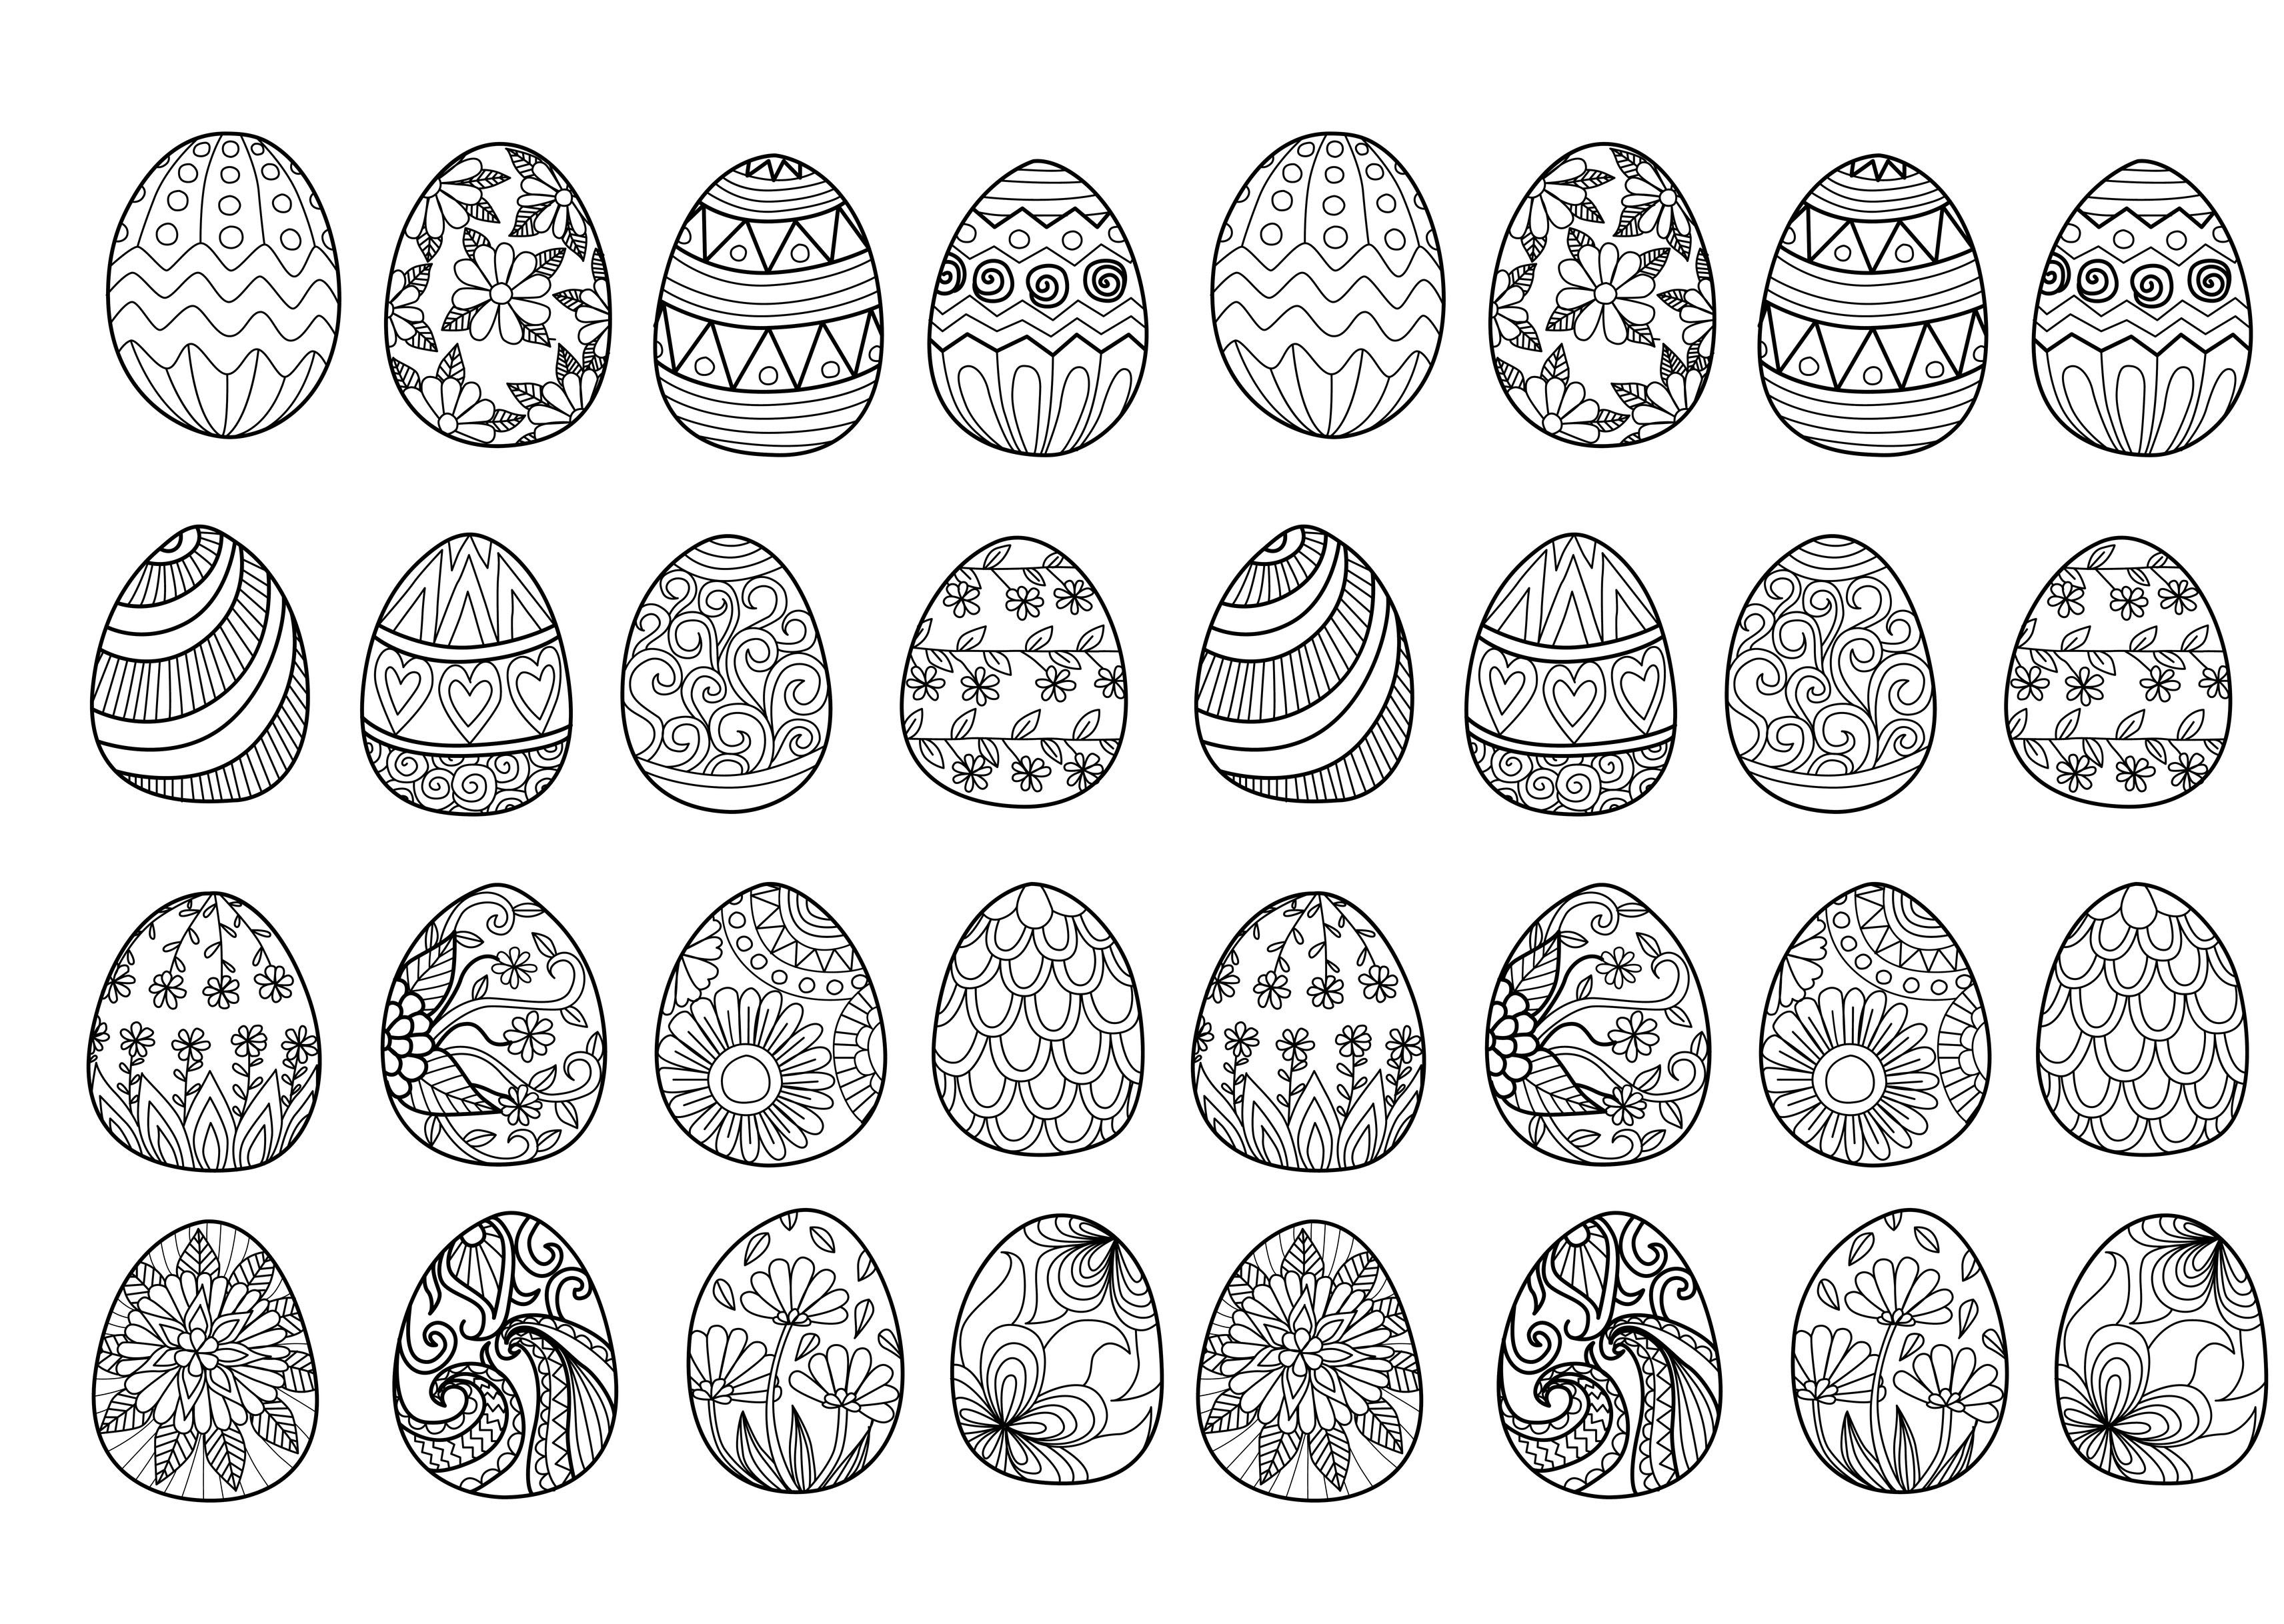 Easter eggs for coloring book p ques coloriages - Coloriage oeuf de paque ...